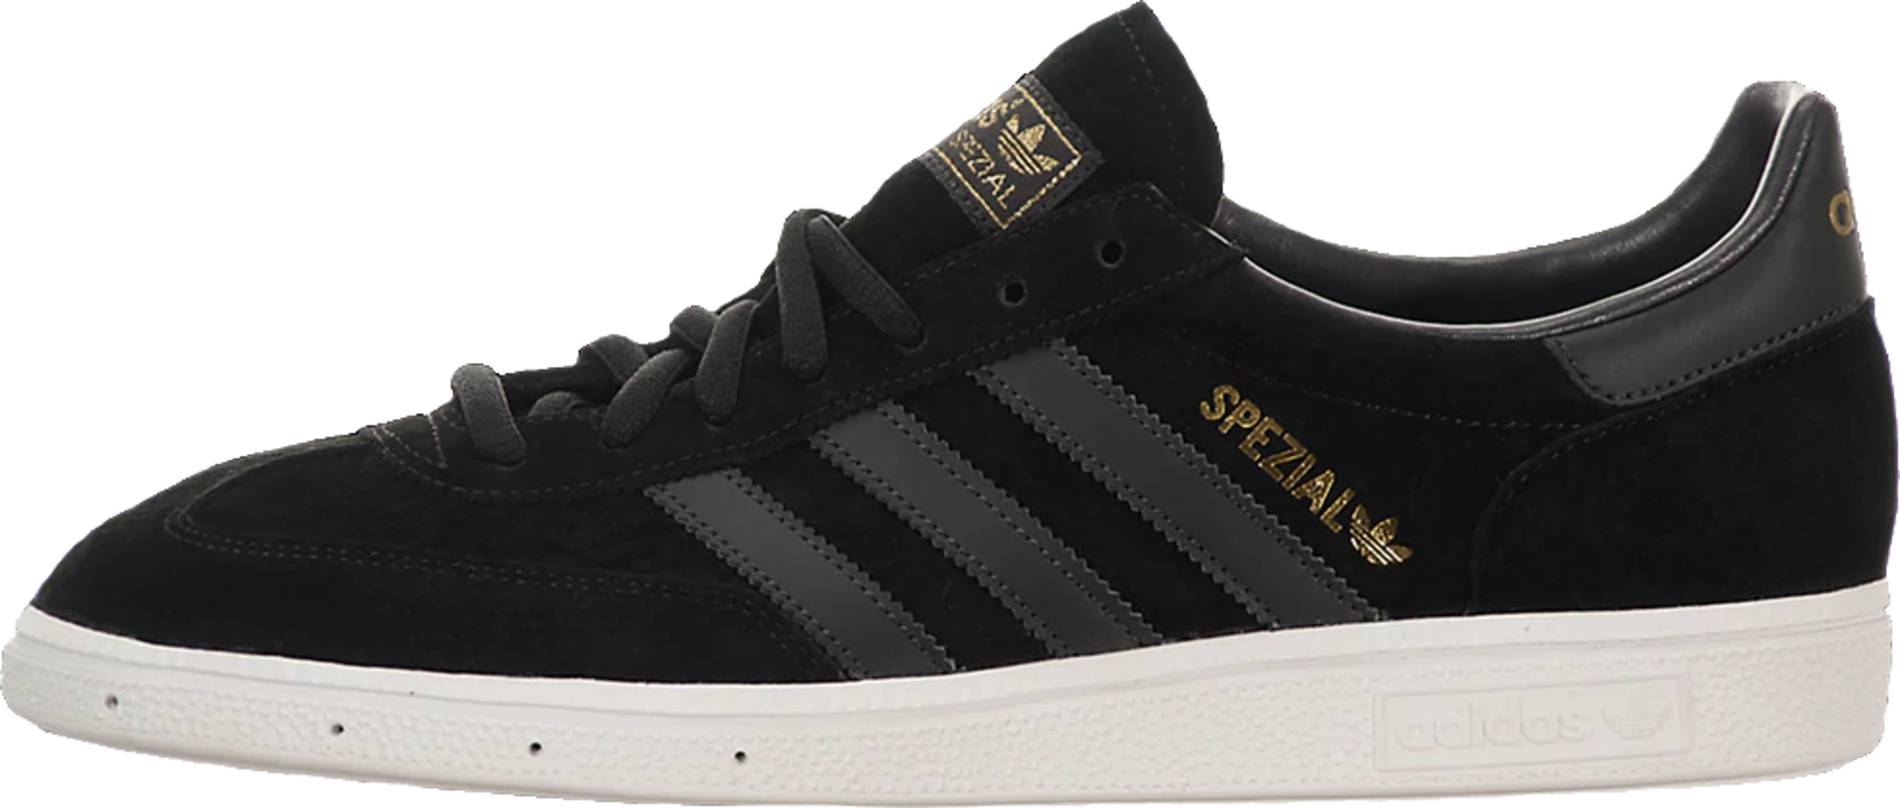 8 Reasons to/NOT to Buy Adidas Spezial